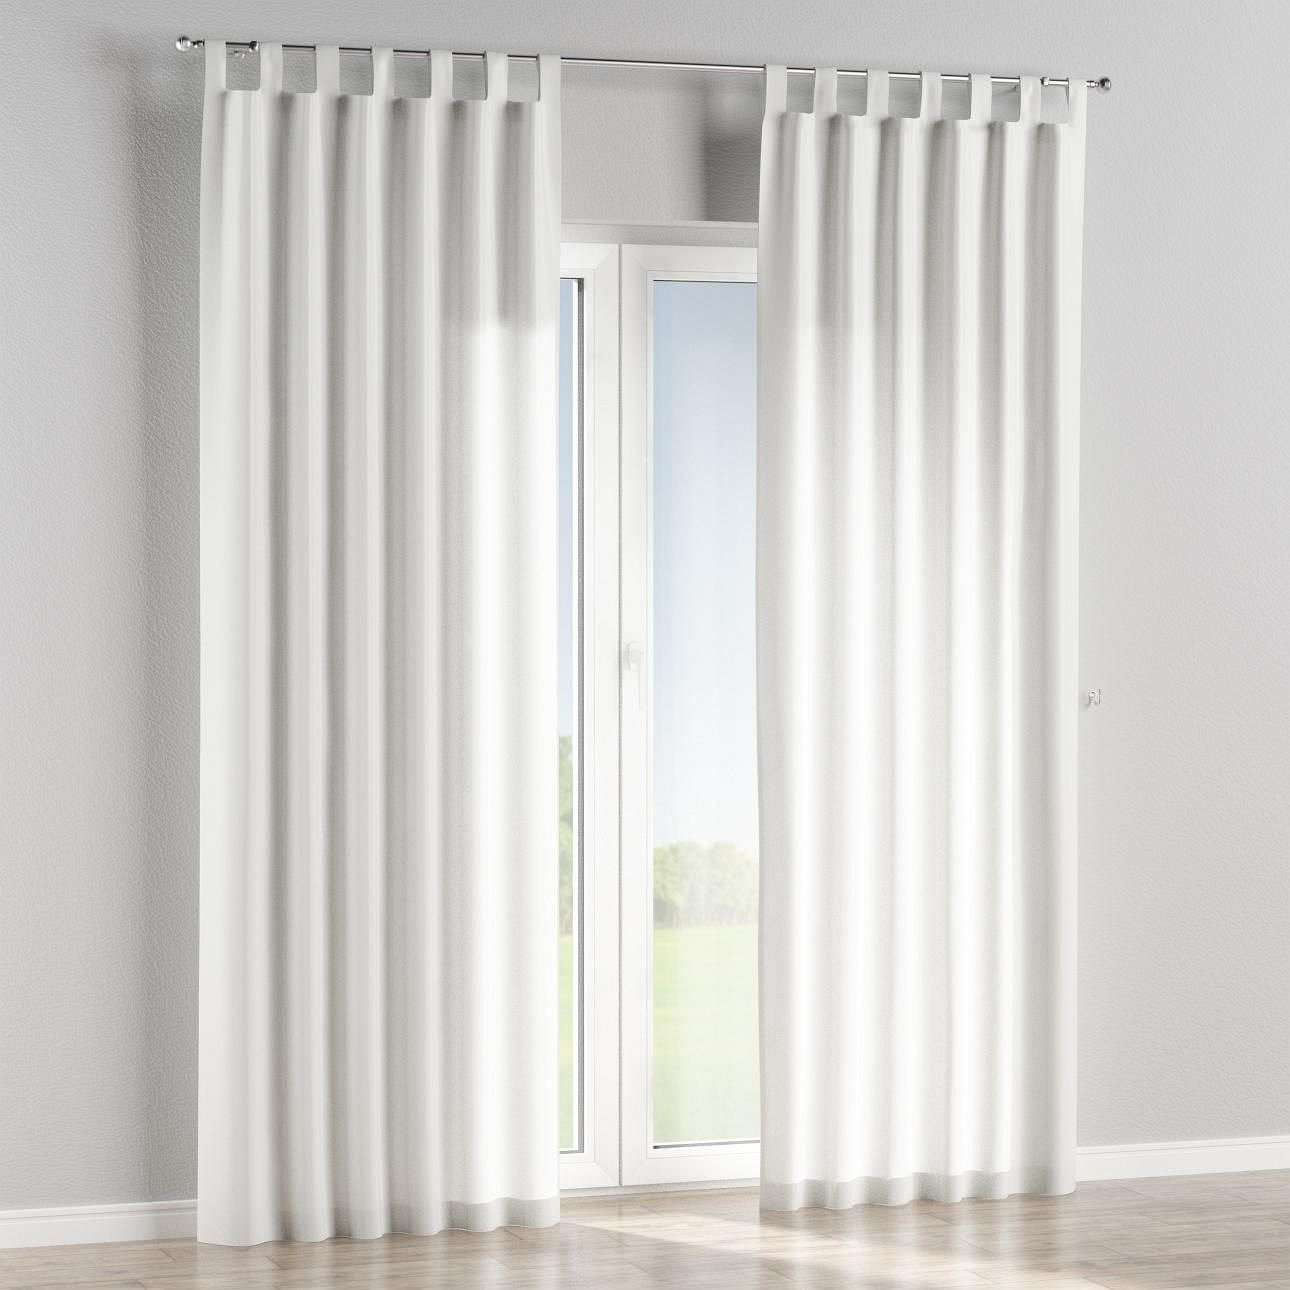 Tab top curtains in collection SALE, fabric: 136-21